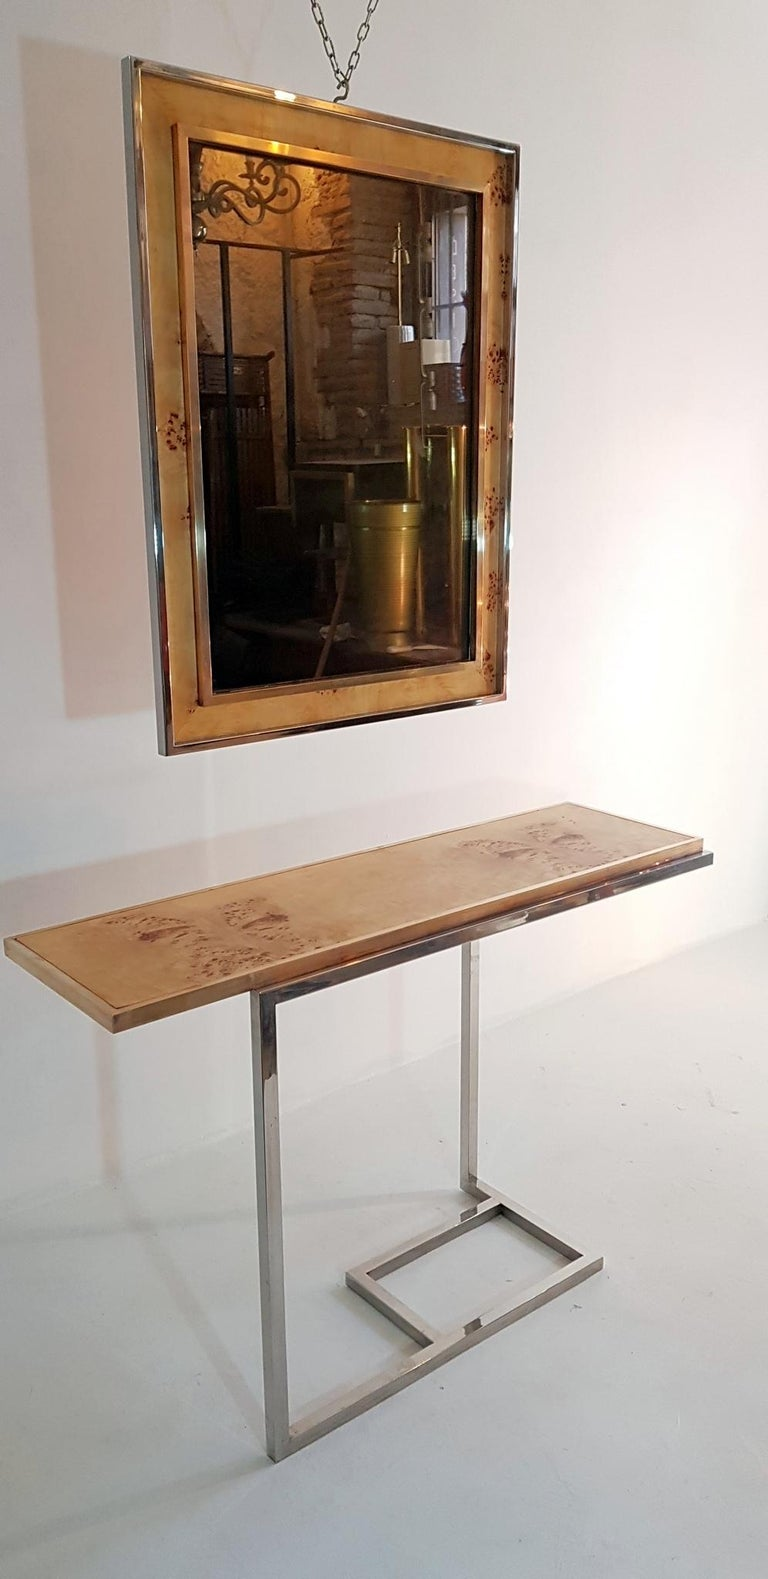 Console and Mirror in Burl Wood, Chrome and Brass 5